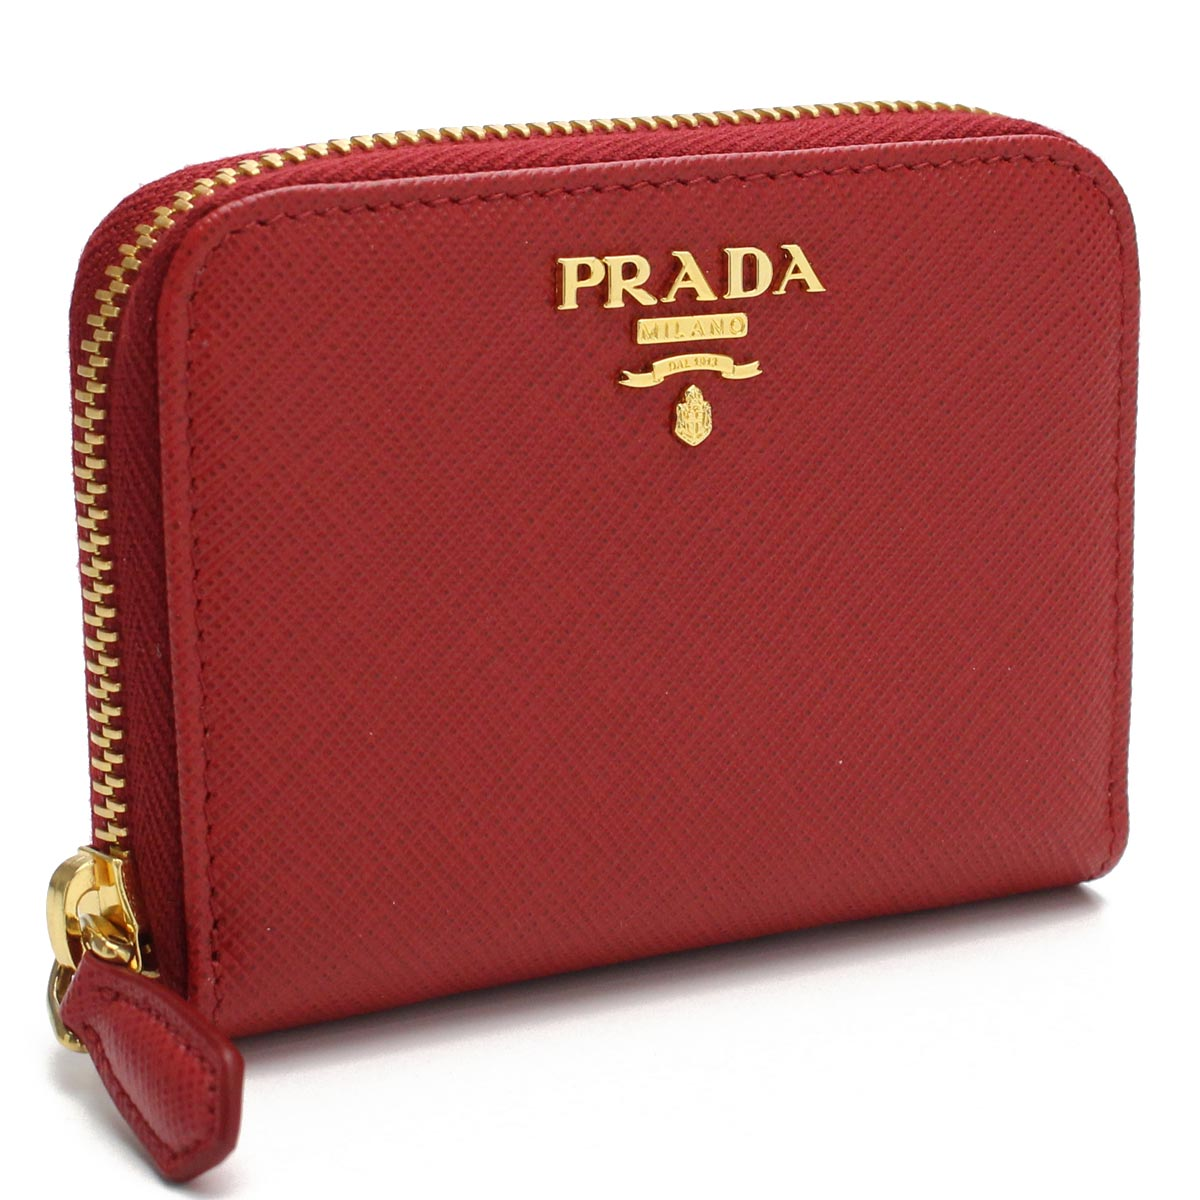 341b3607dab Bighit The total brand wholesale  Prada PRADA round fastener coin case coin  purse 1MM268 QWA F068Z FUOCO red system